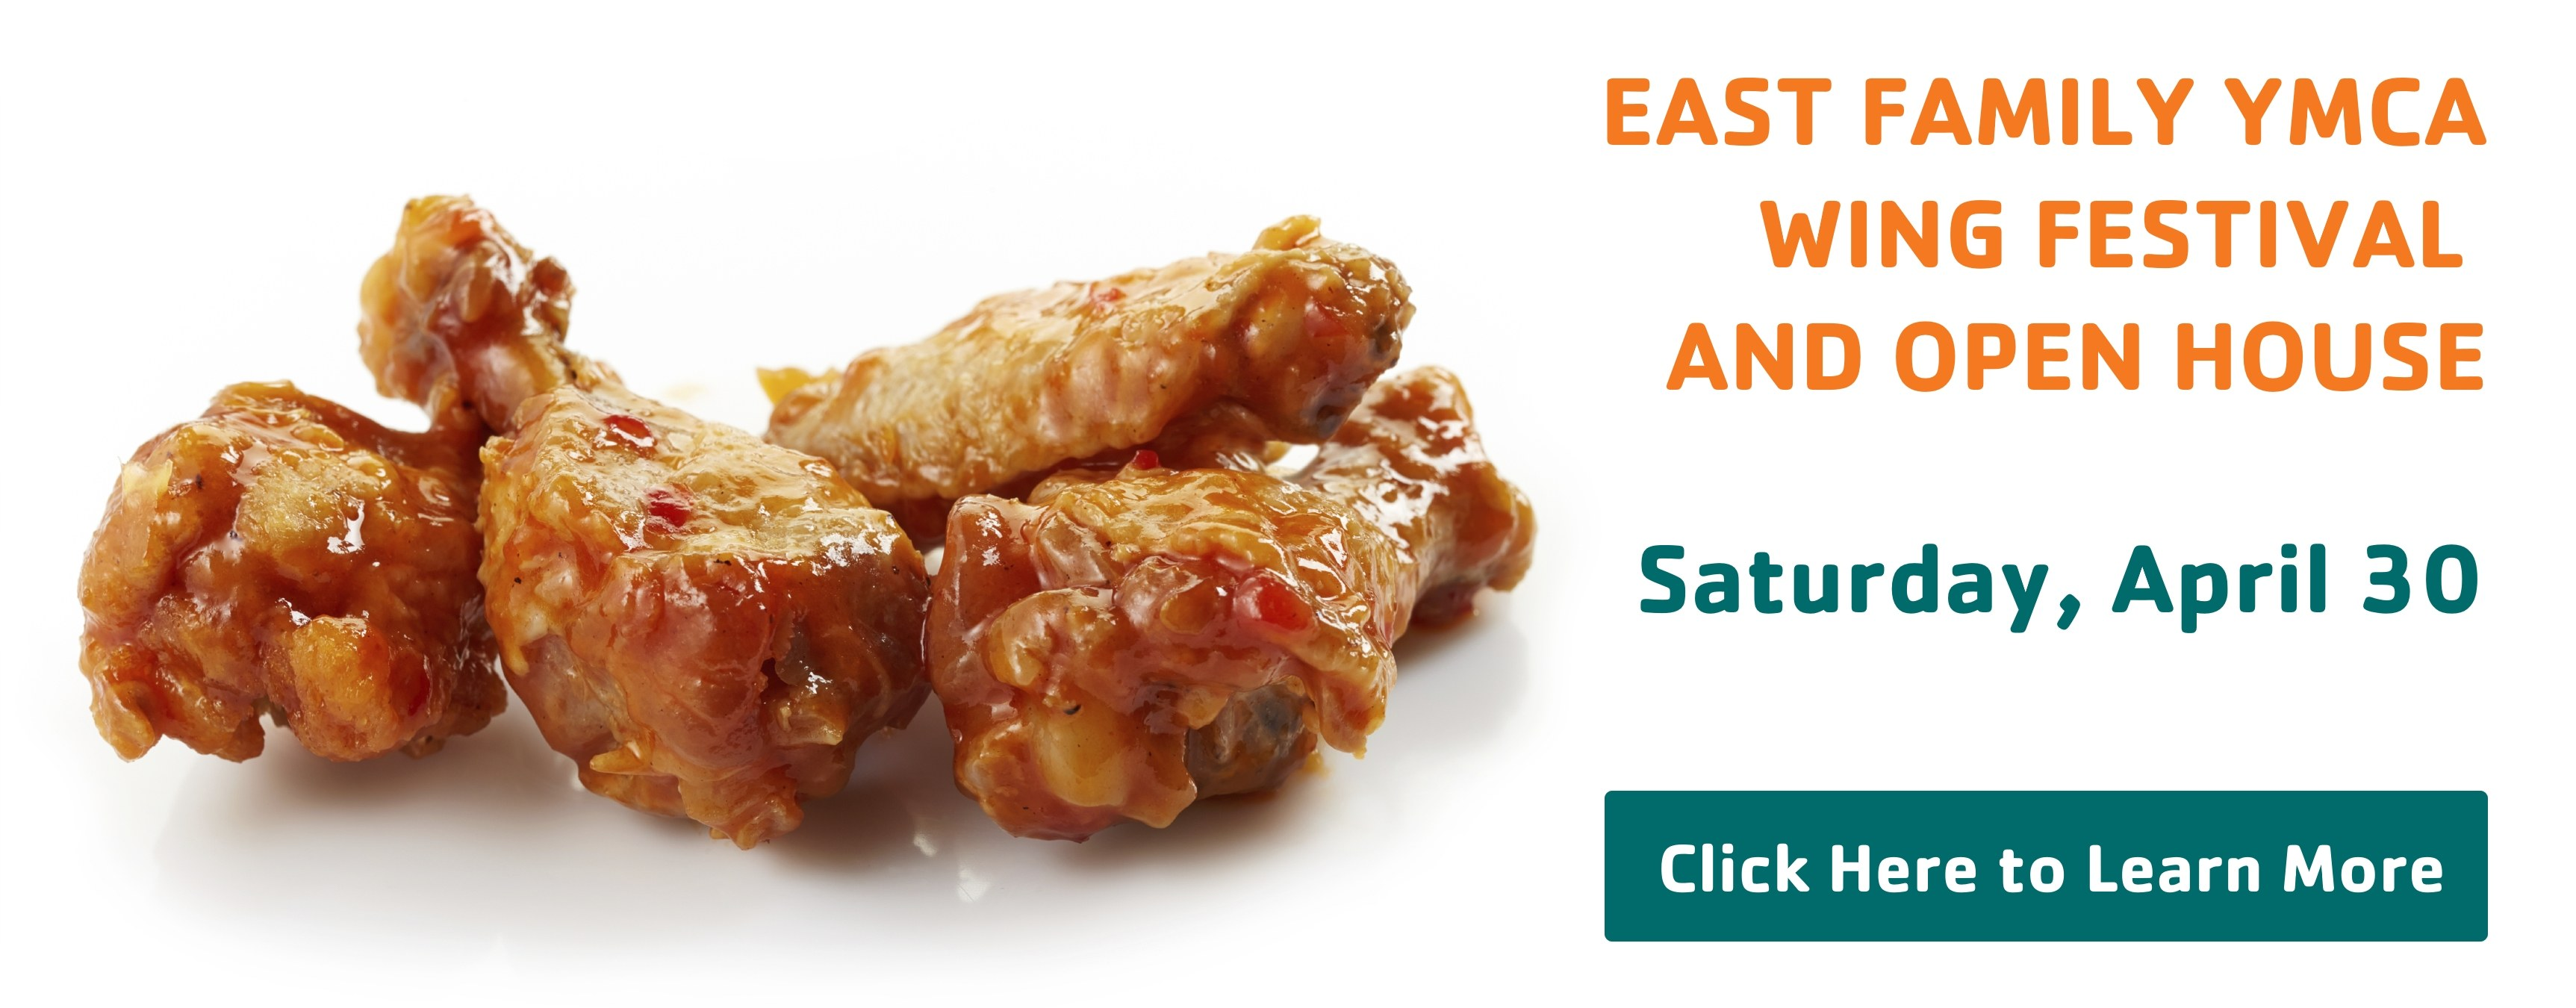 Wing-Festival-and-Open-House-Web-Banner